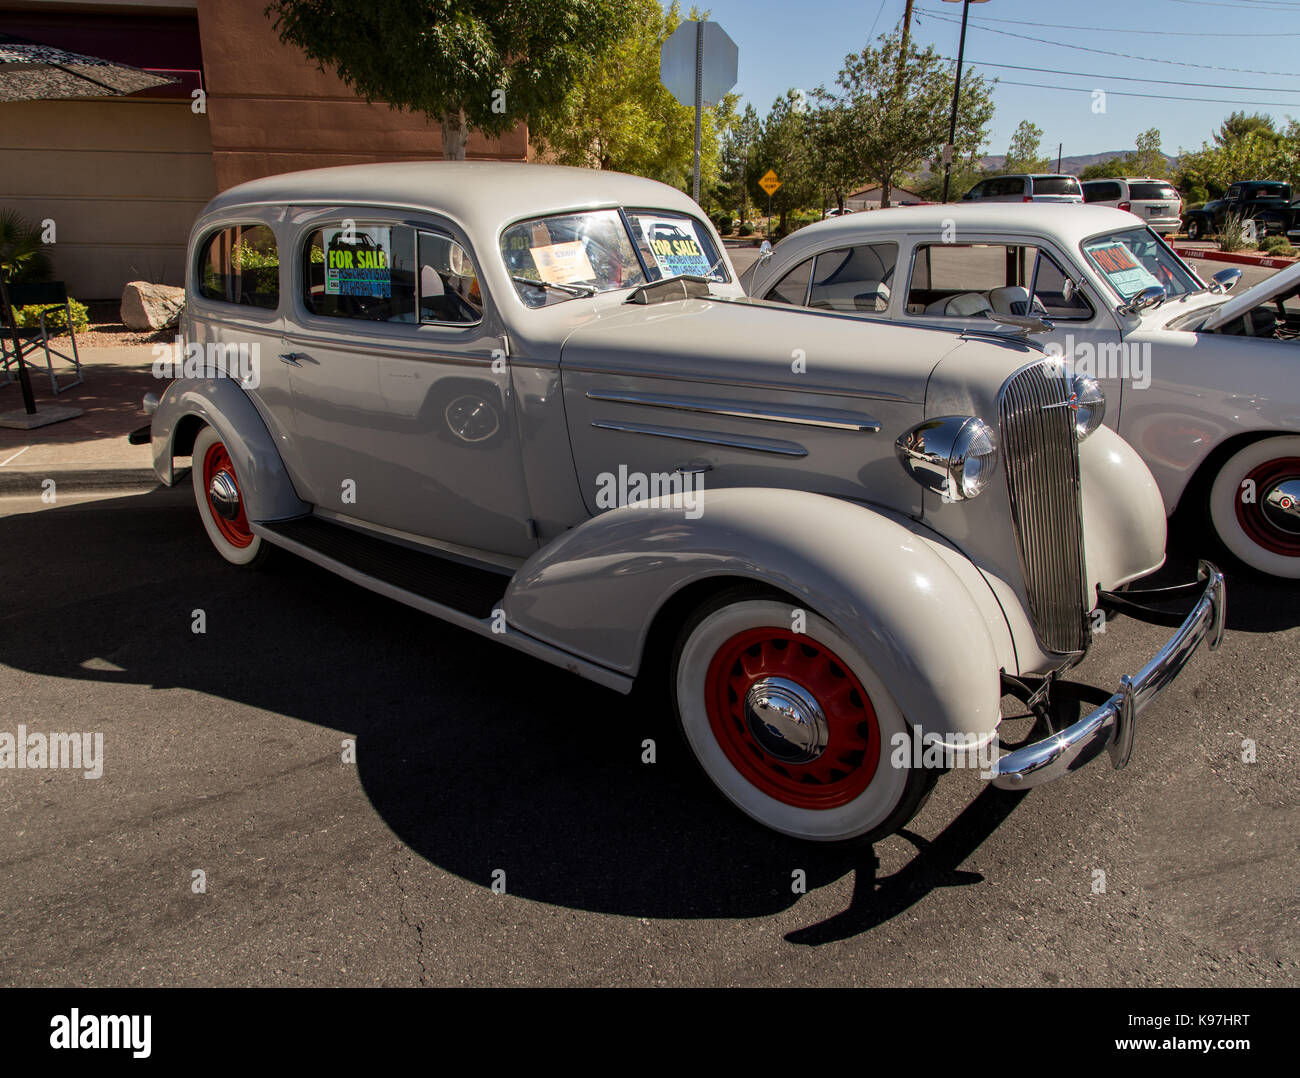 Chevy Deluxe Stock Photos & Chevy Deluxe Stock Images - Alamy